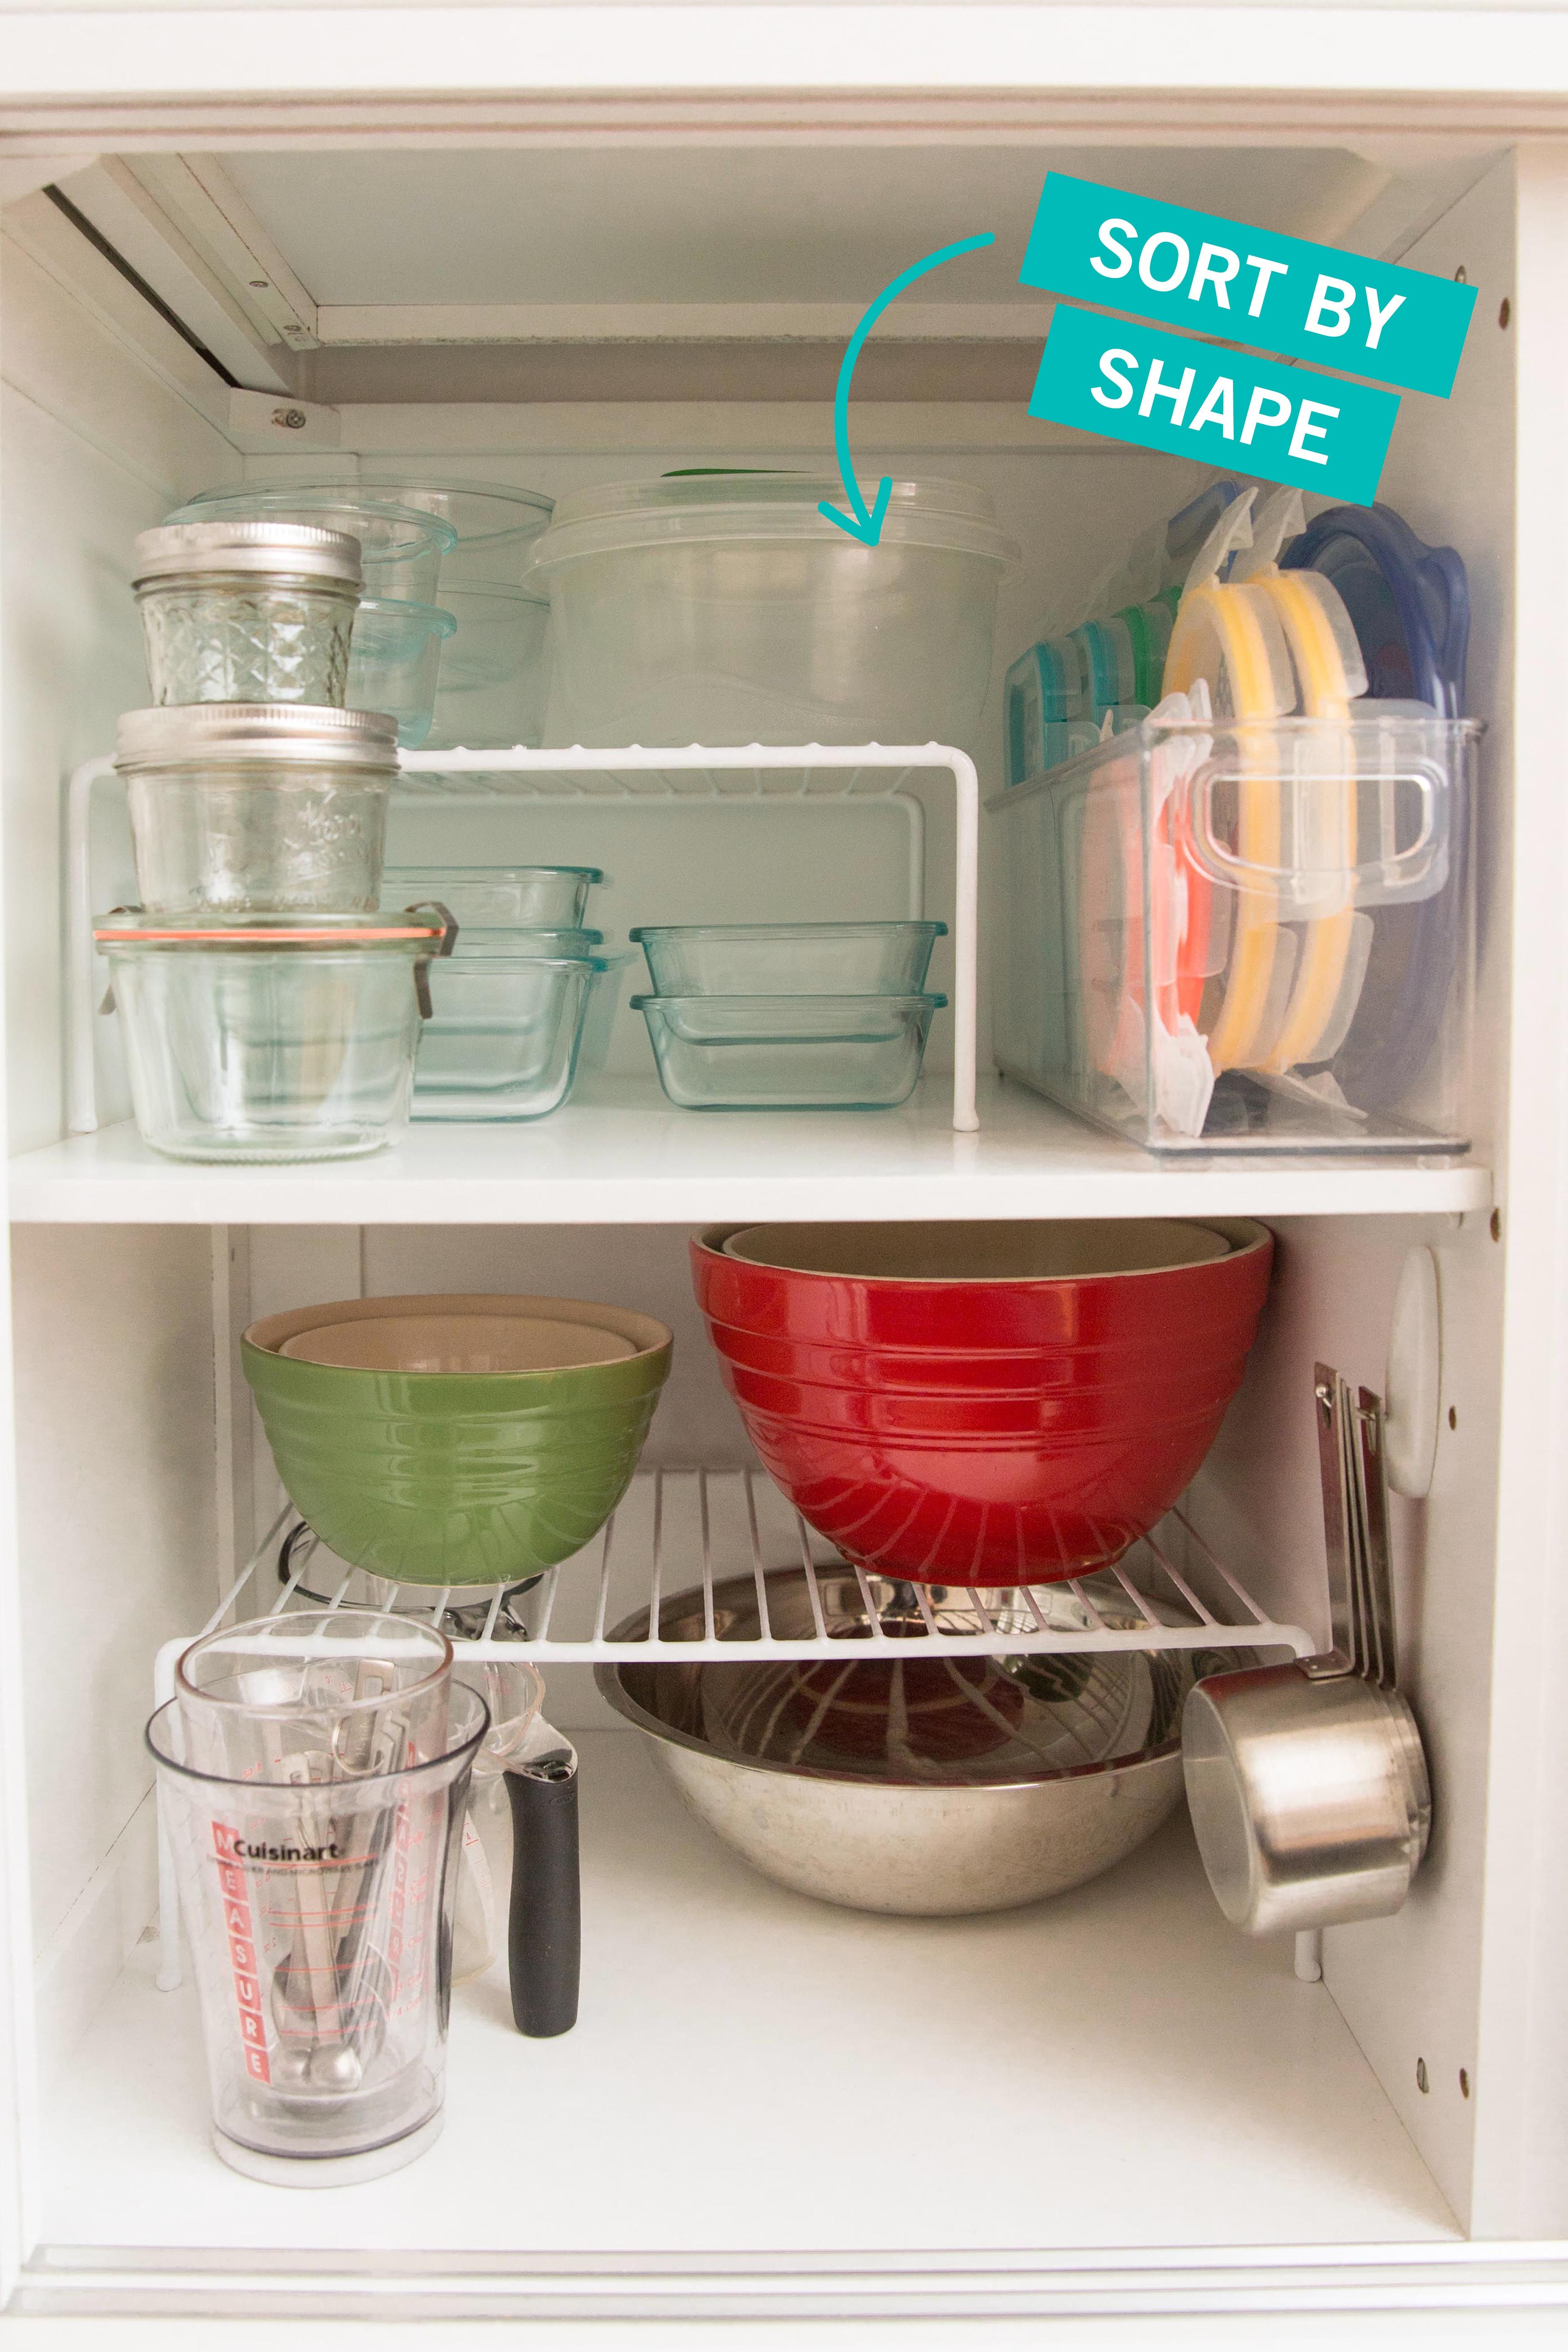 Forum on this topic: 17 Ways to Fake an OrganizedKitchen, 17-ways-to-fake-an-organizedkitchen/